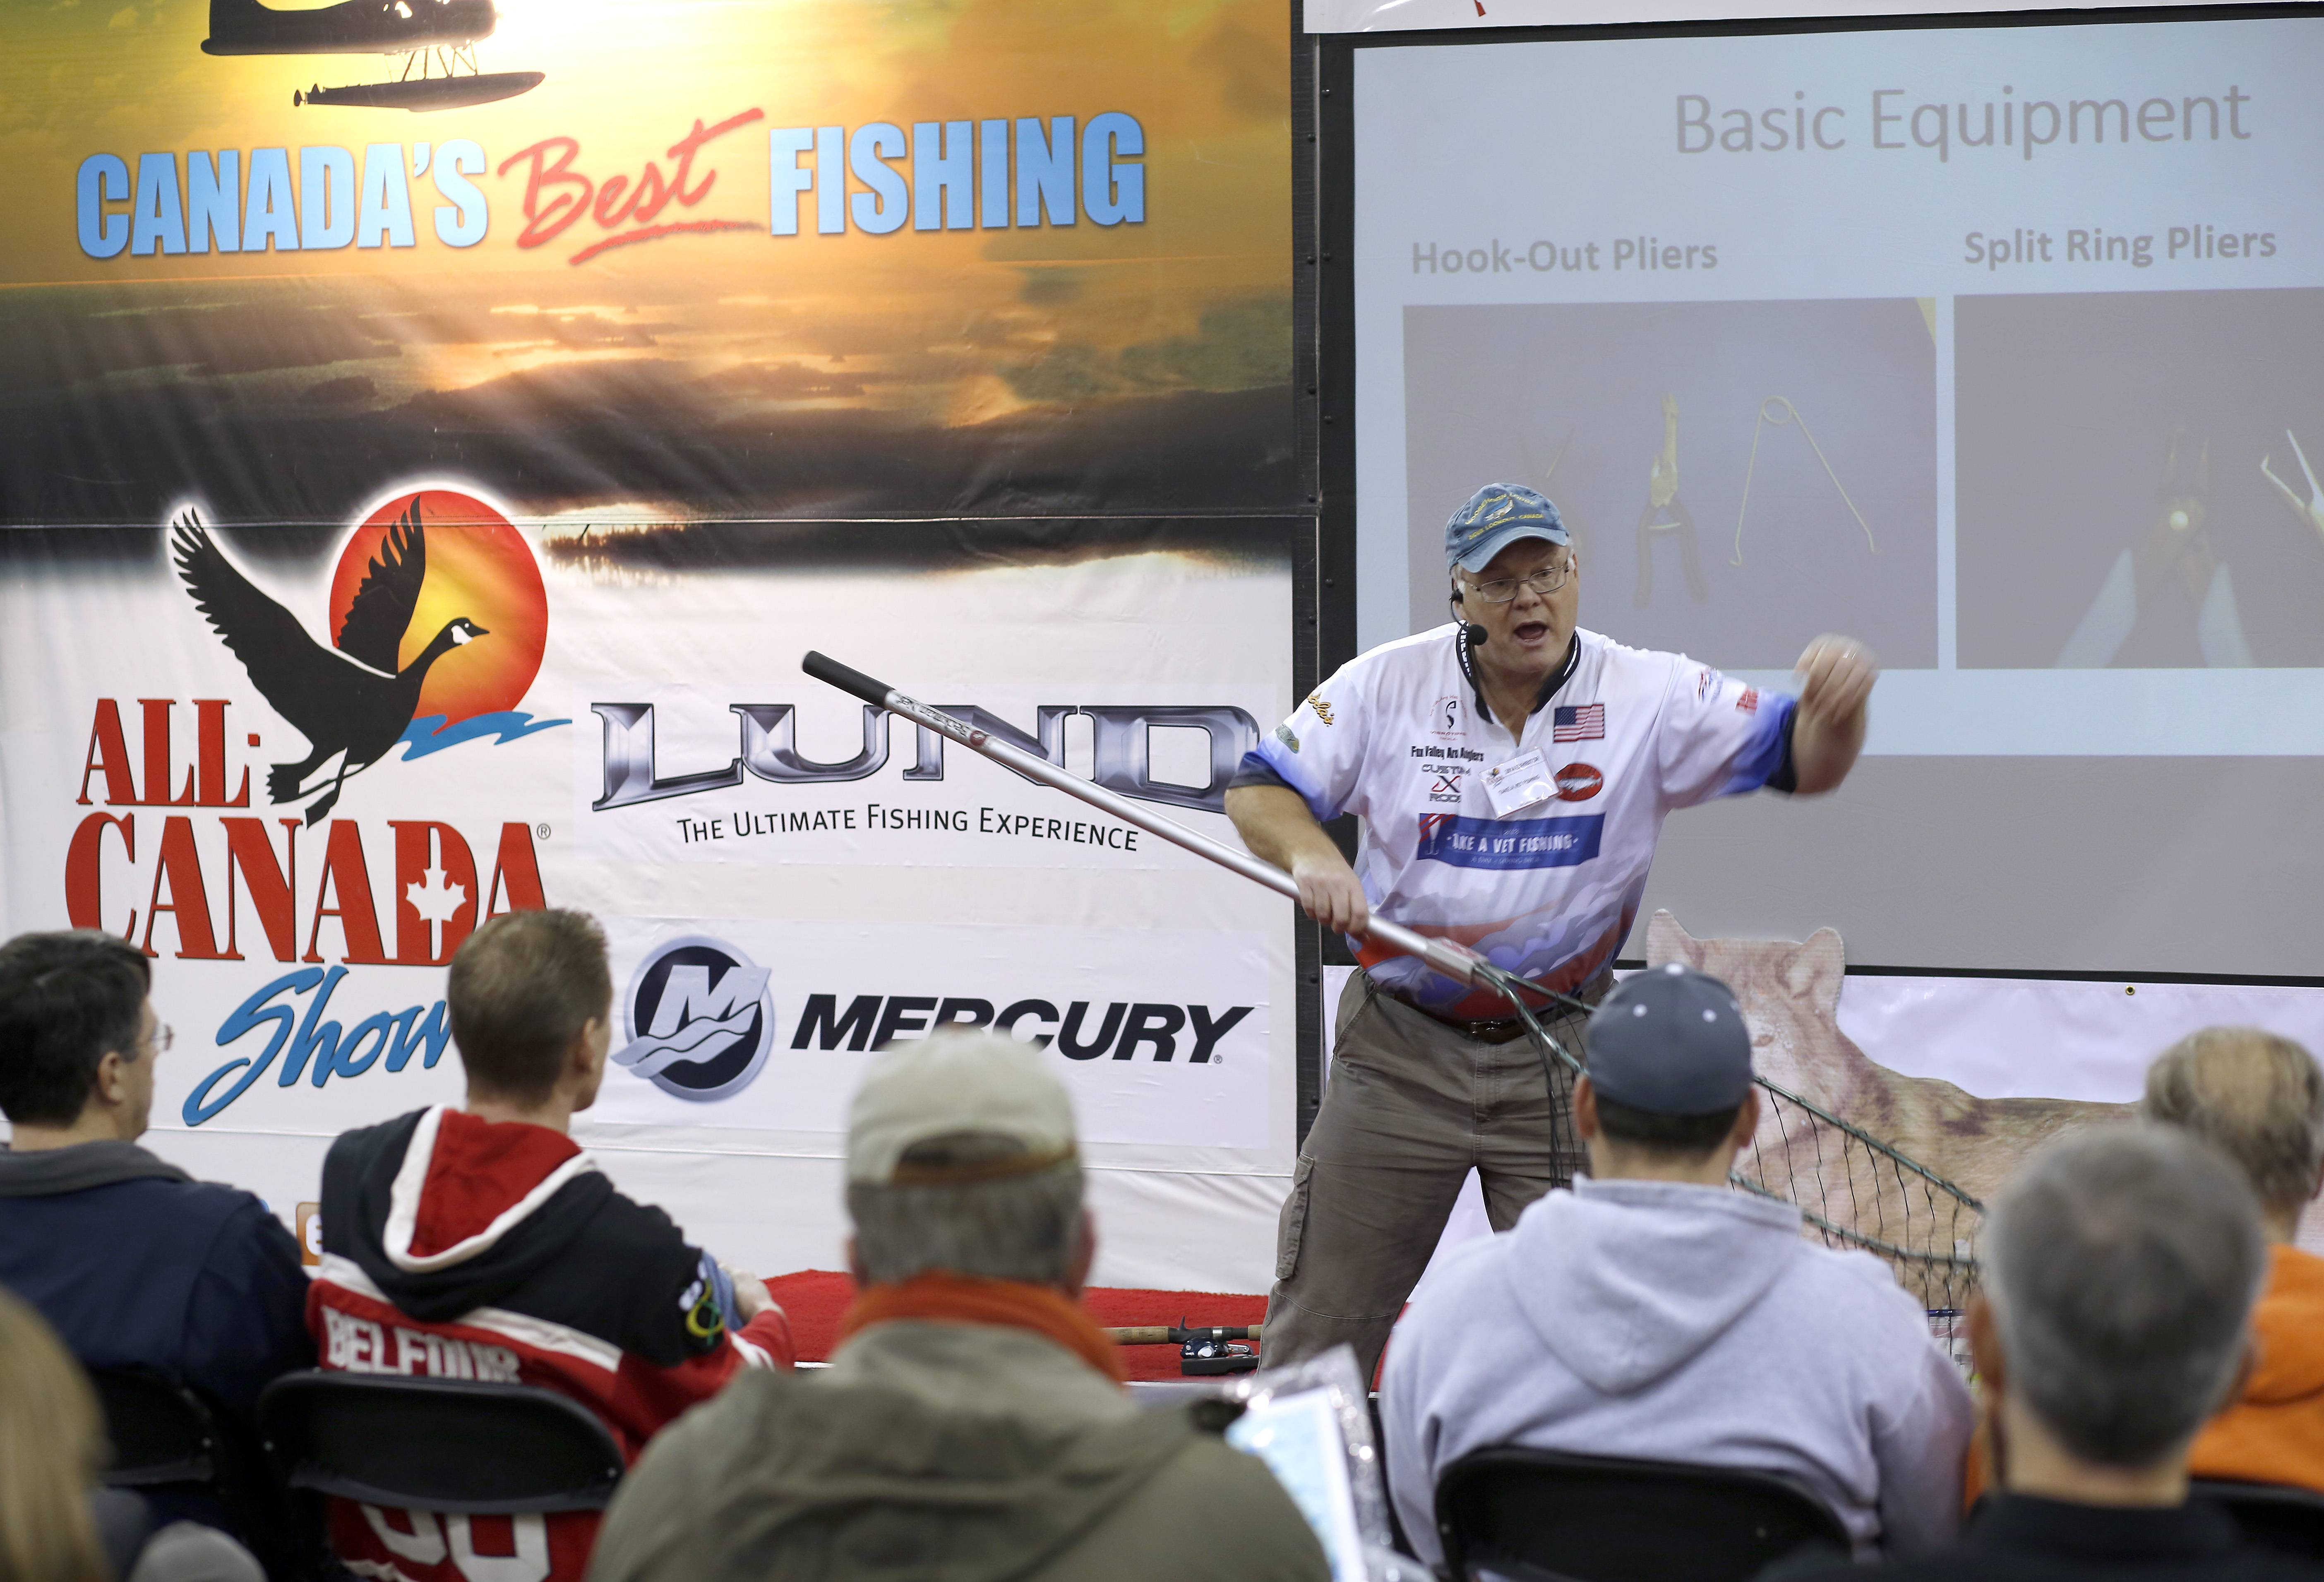 Fishing experts will offer tips on how to land the big one at the All-Canada Show at Pheasant Run in St. Charles.